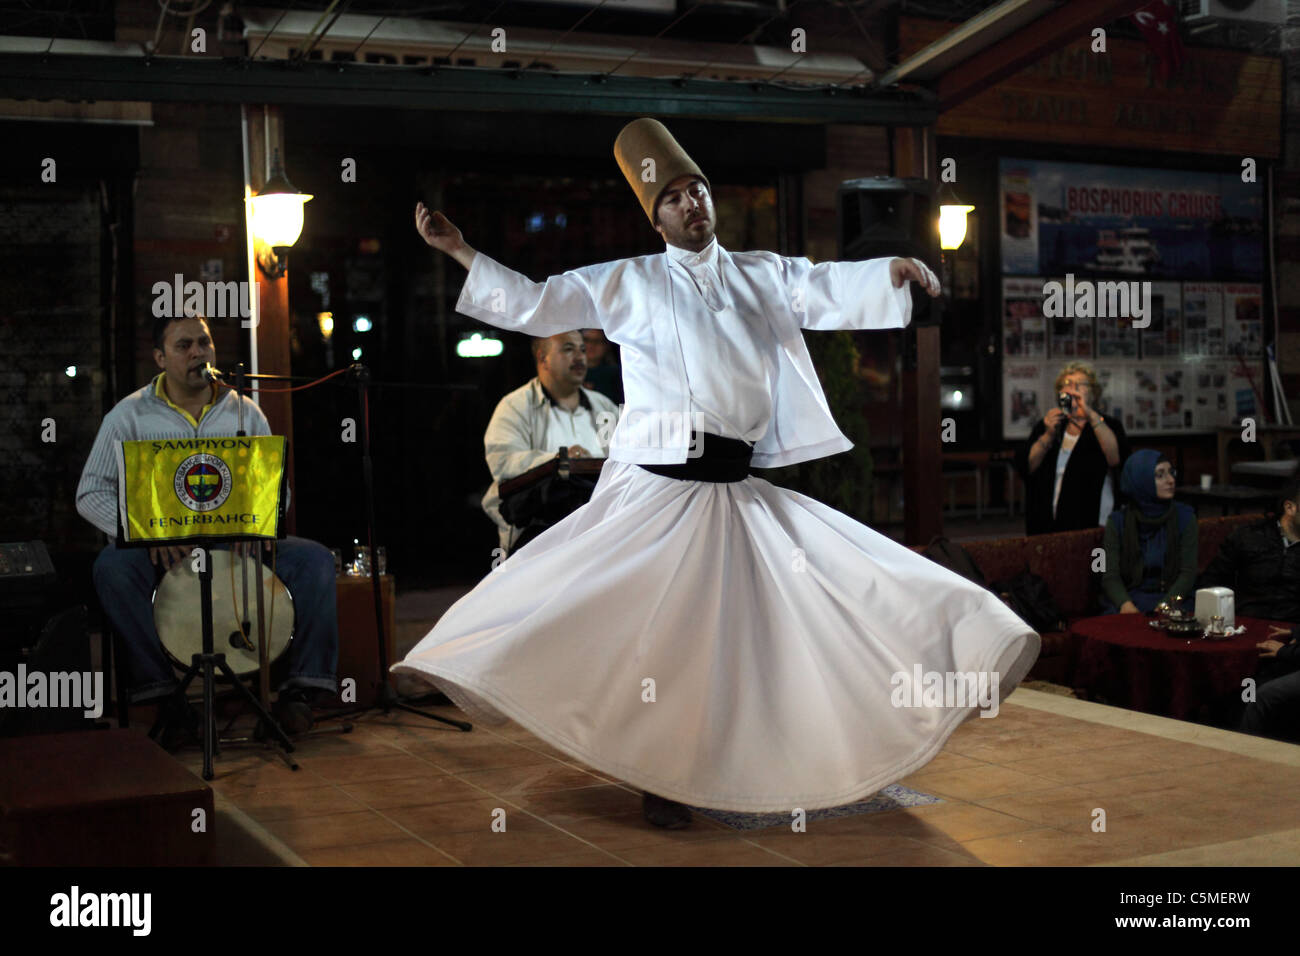 Whirling Dervish dancing  in Istanbul, Turkey - Stock Image